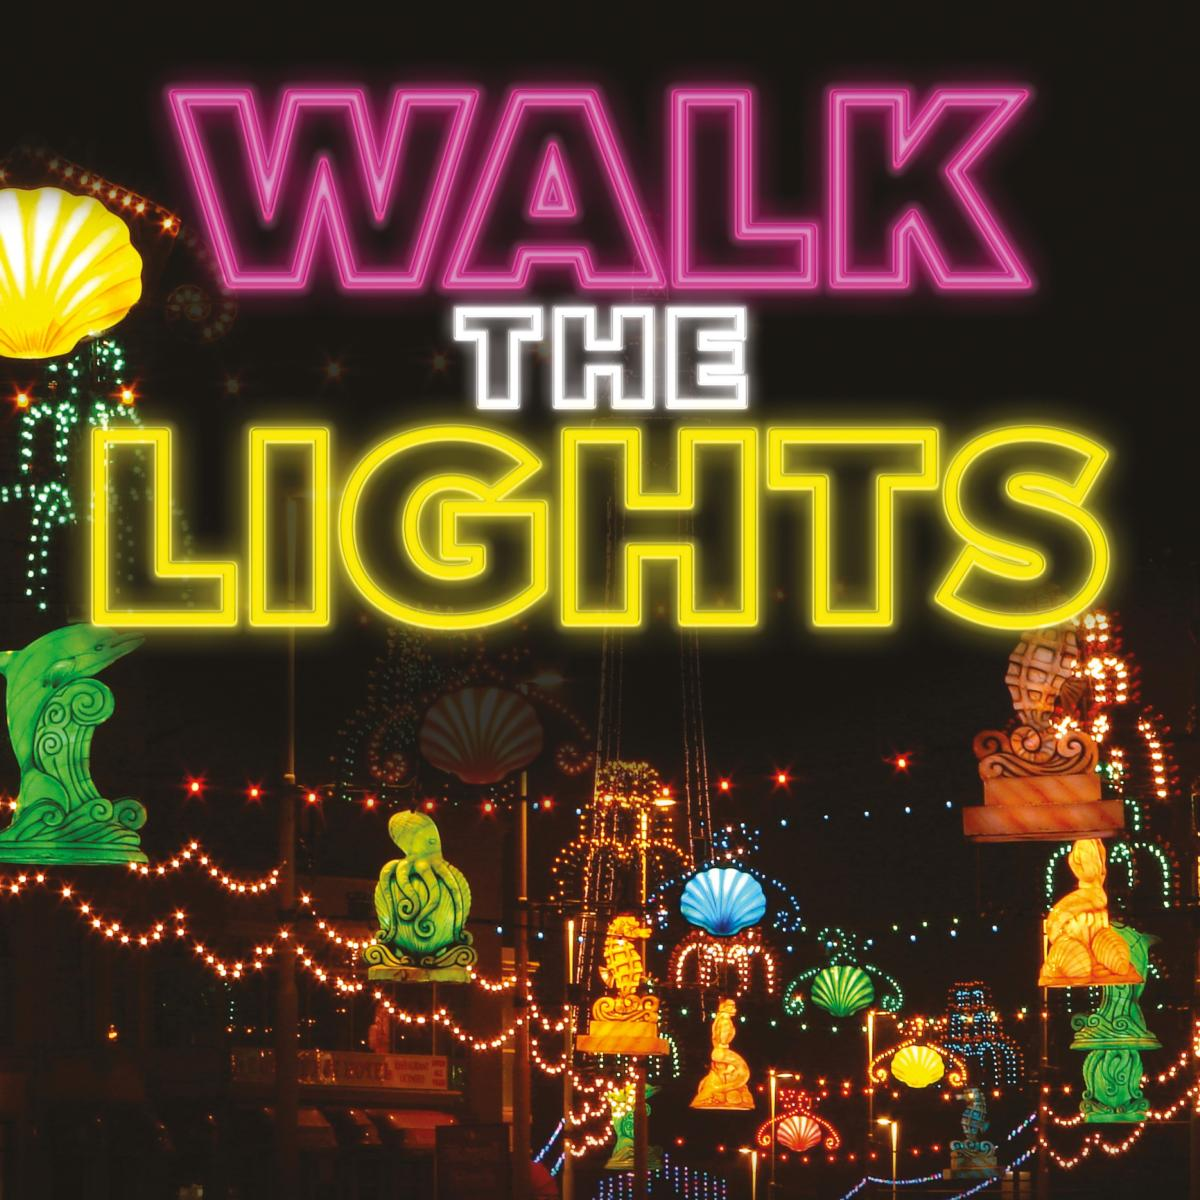 Walk the Lights image